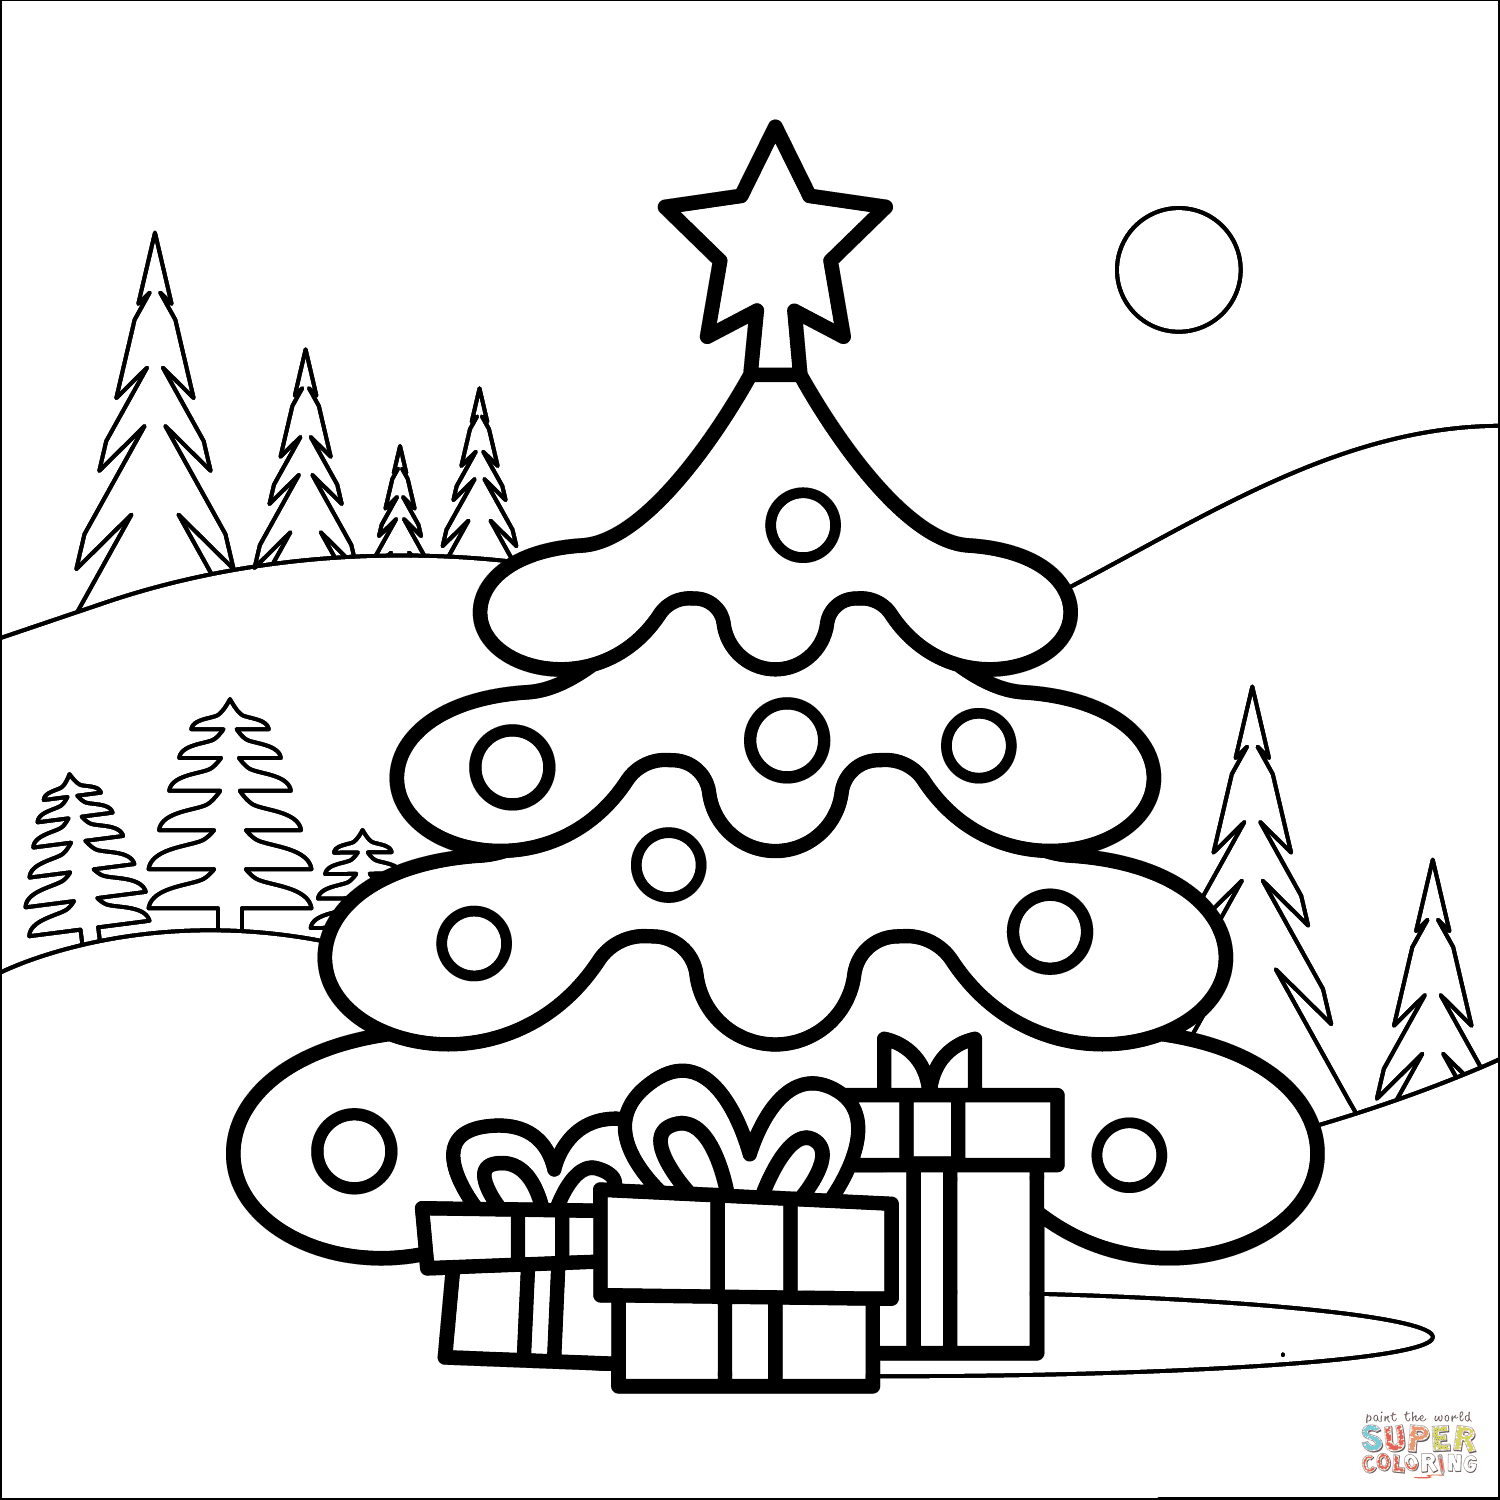 Christmas Tree coloring page | Free Printable Coloring Pages